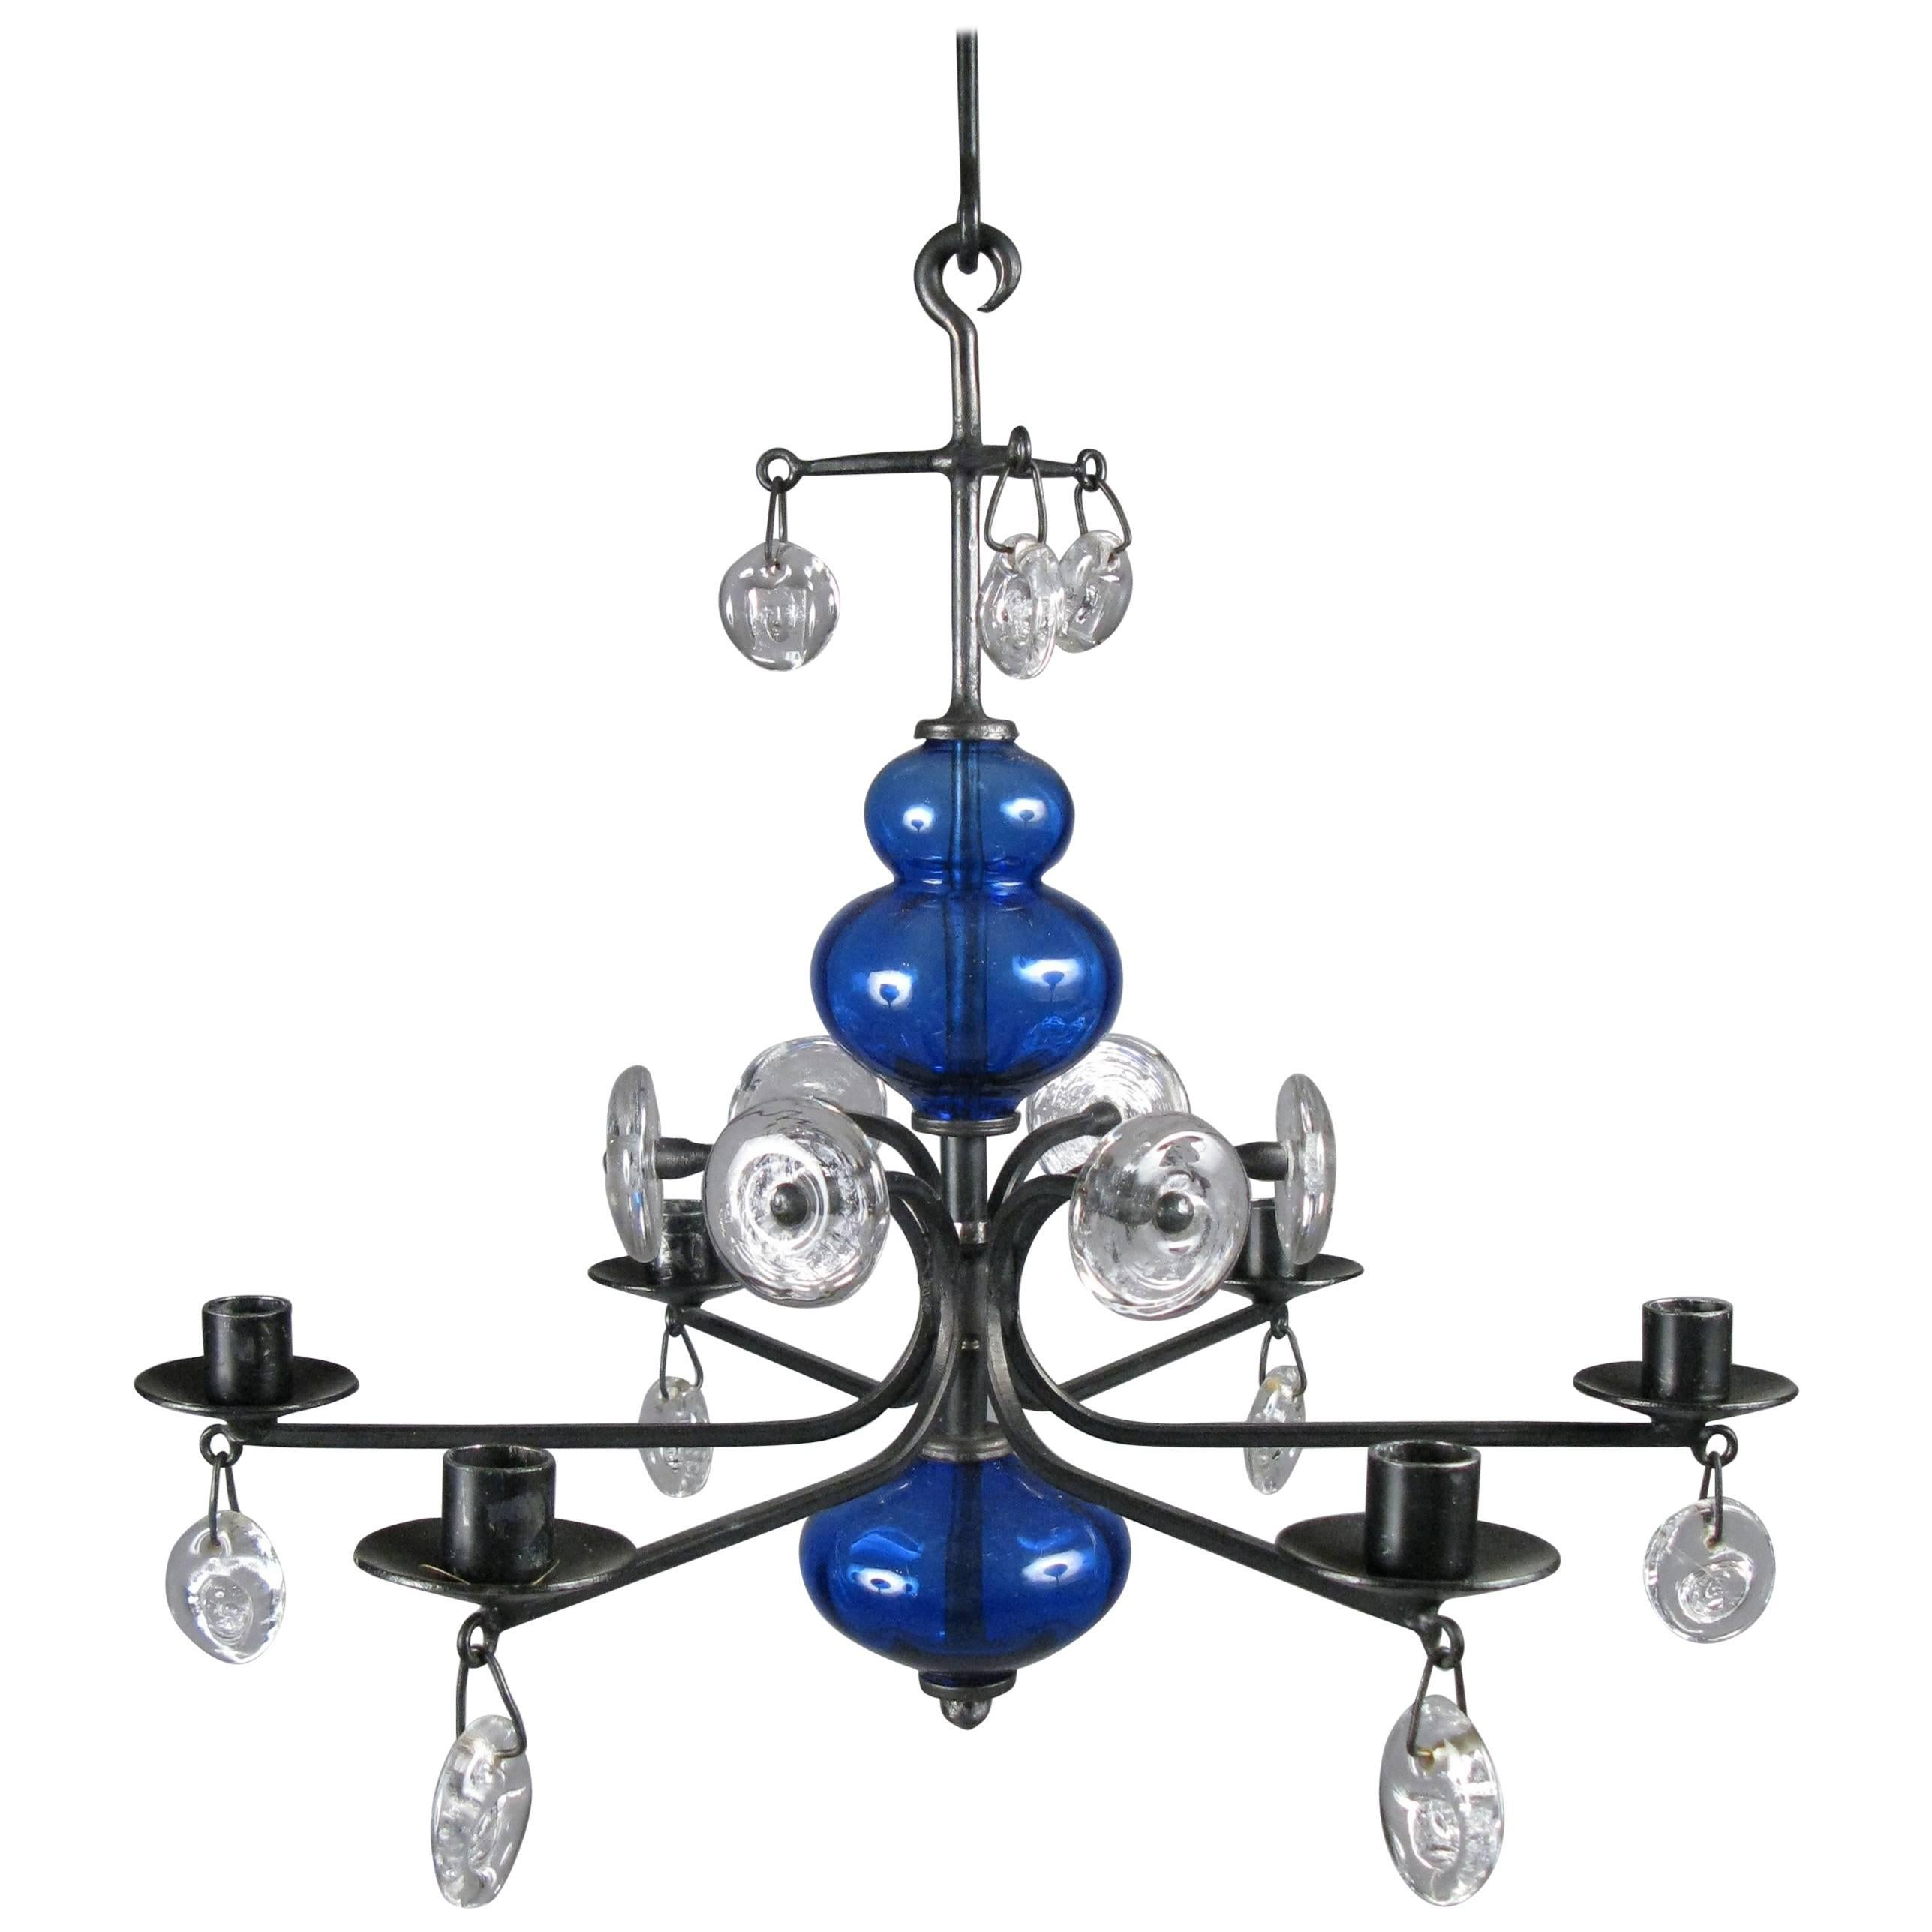 Danish Glass And Iron Chandelier By Erik Hoglund For Kosta Boda